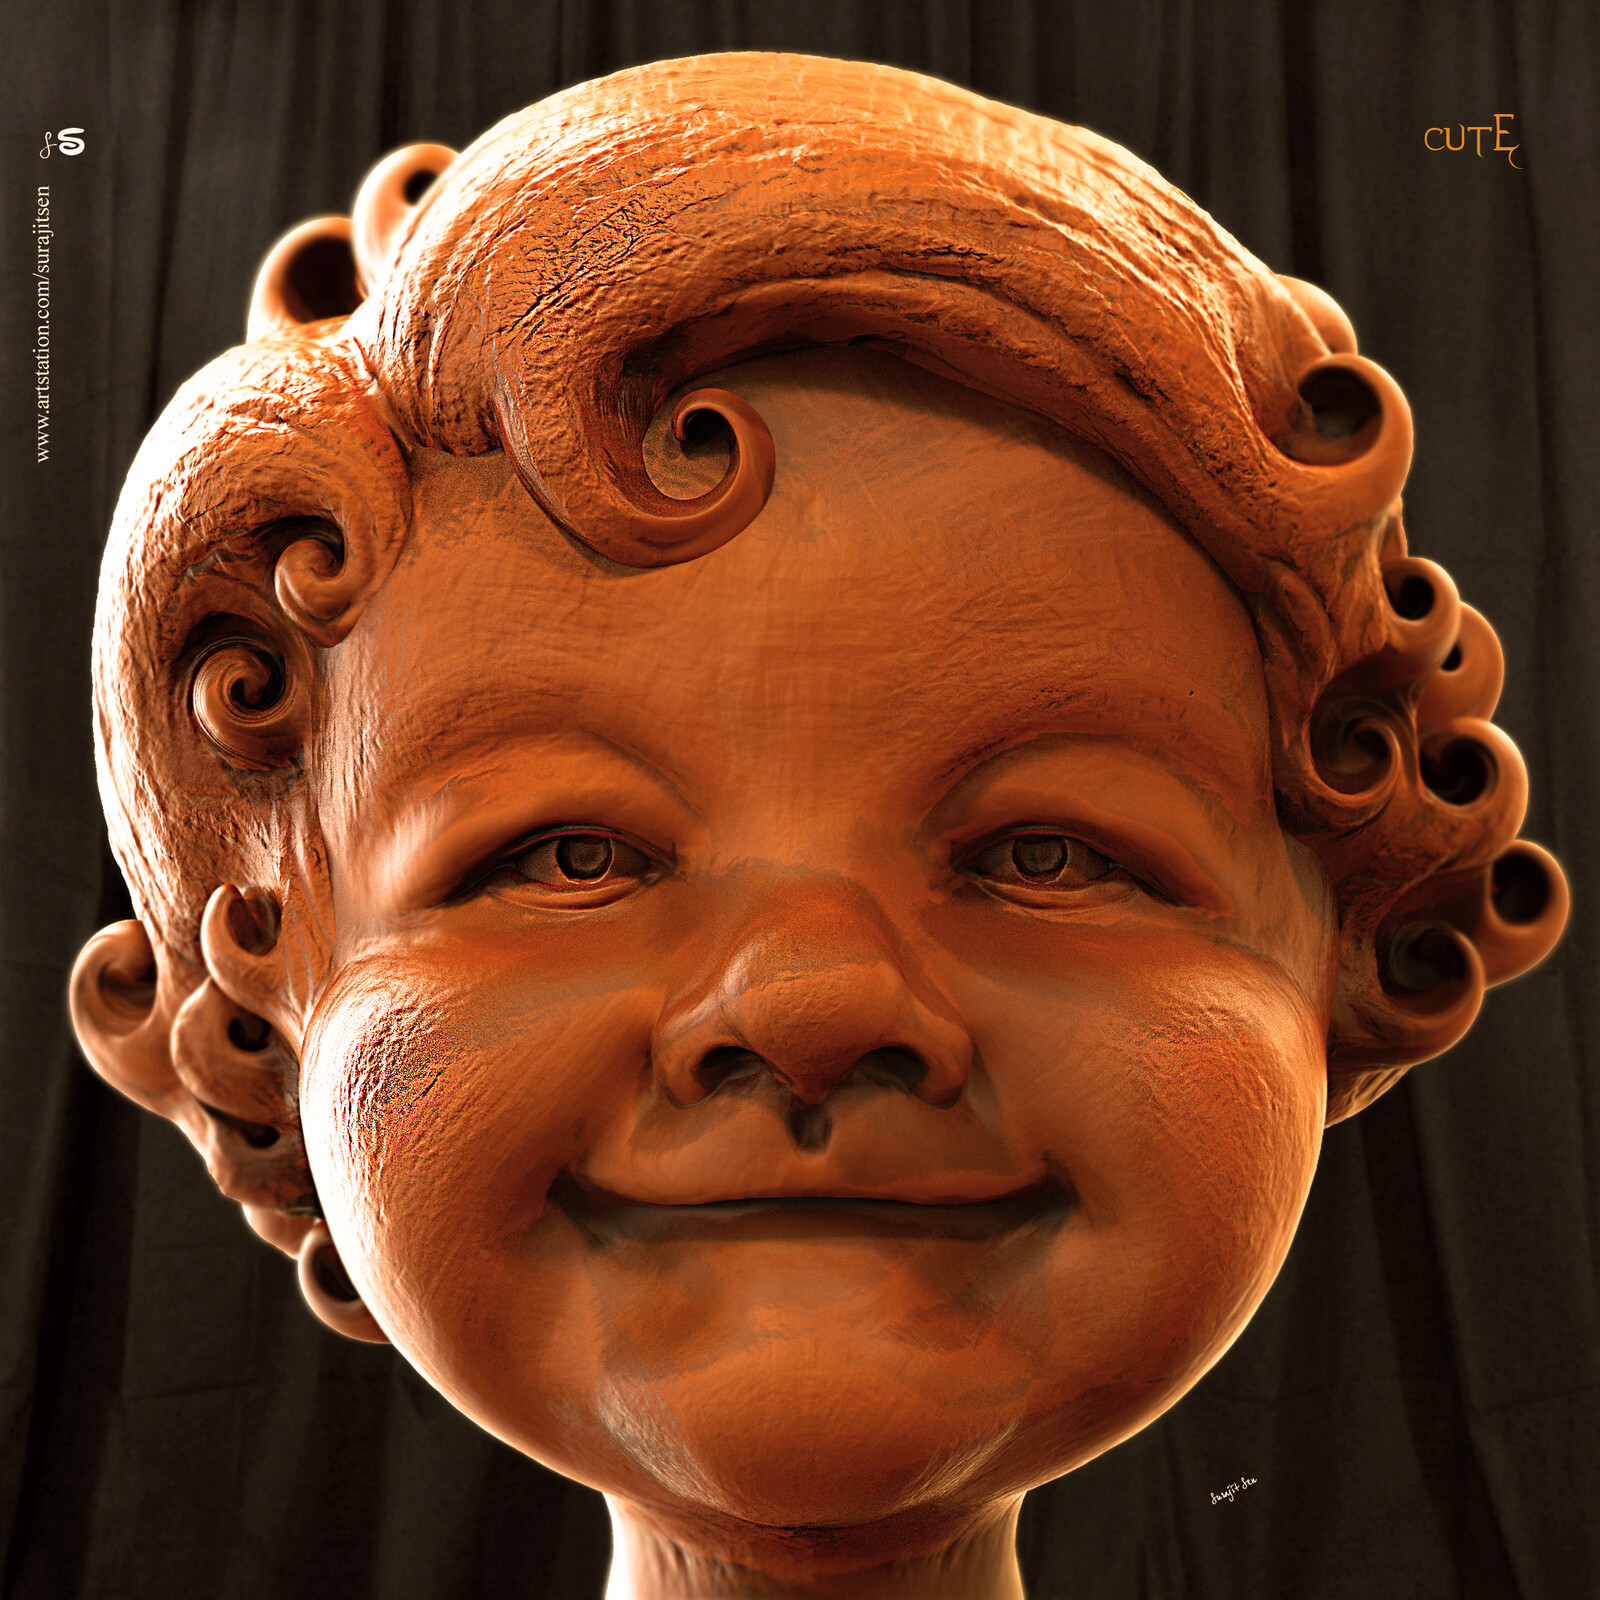 One of my Speed Digital Sculpting study... Cute... Played with brushes.  Background music- #hanszimmermusic